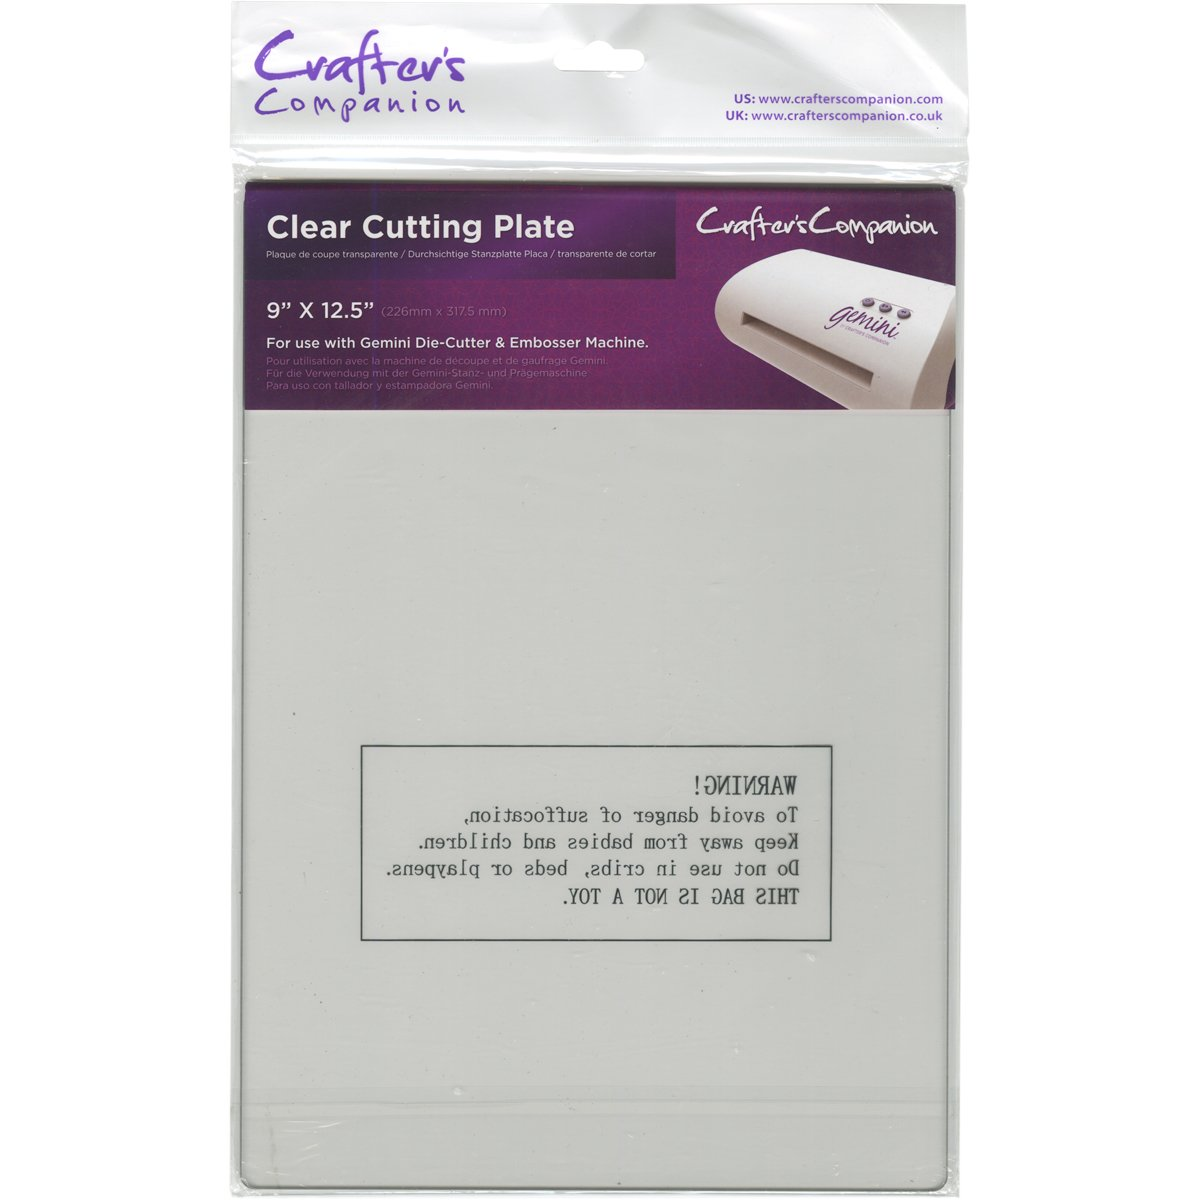 Crafters Companion Gemini Accessories Cutting Plate, Clear Crafter's Companion GEM-ACC-CLEP